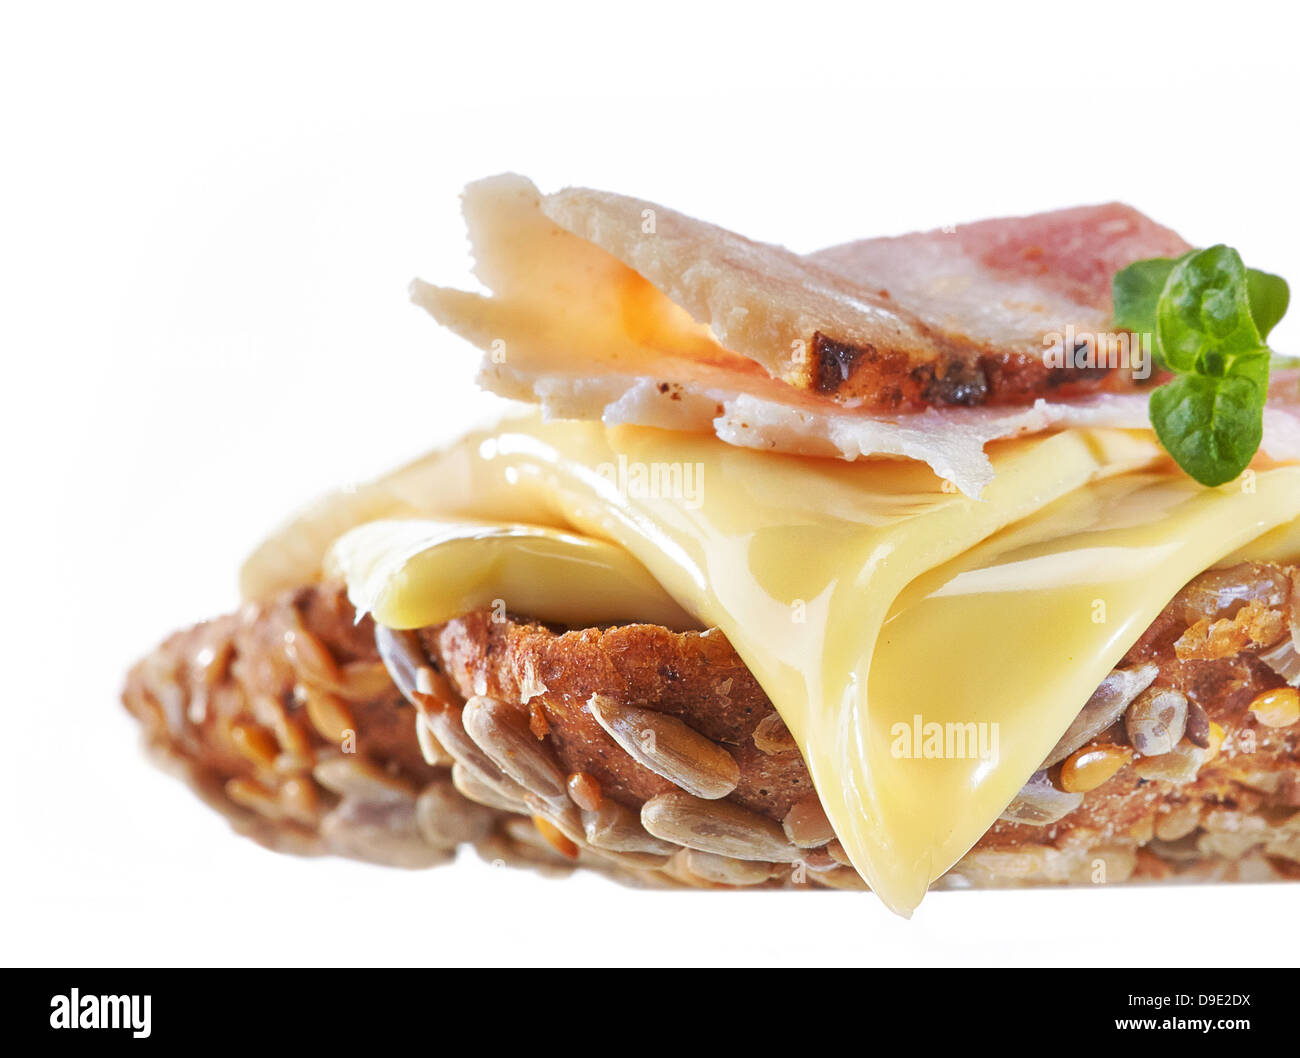 Sandwich with melted cheese and bacon - Stock Image